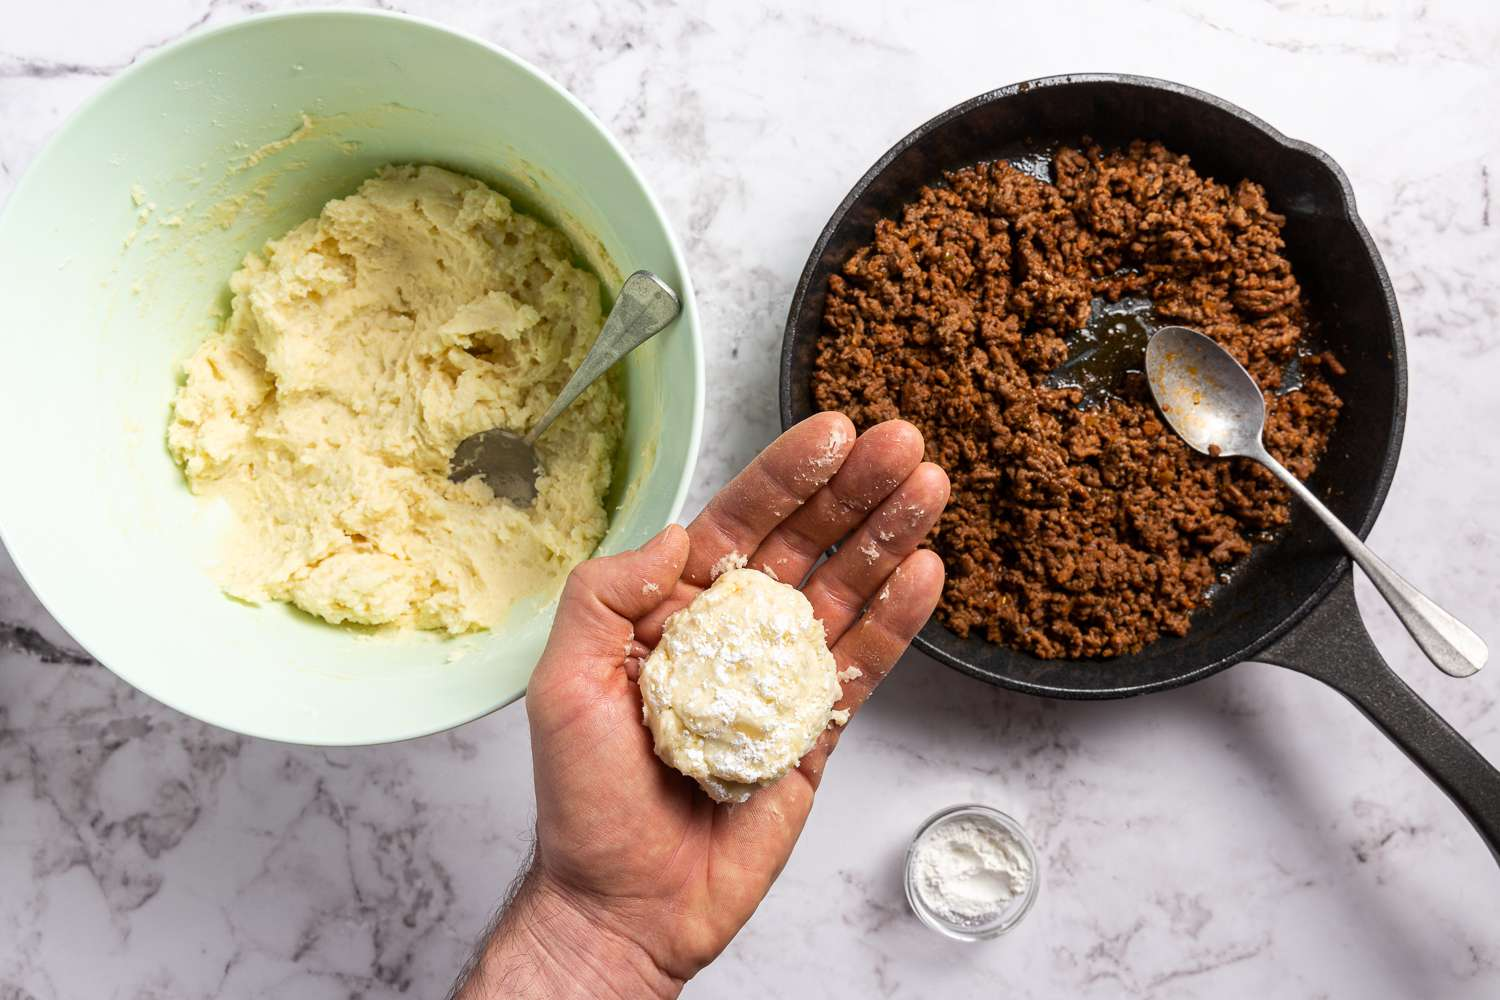 mashed potatoes with ground beef inside